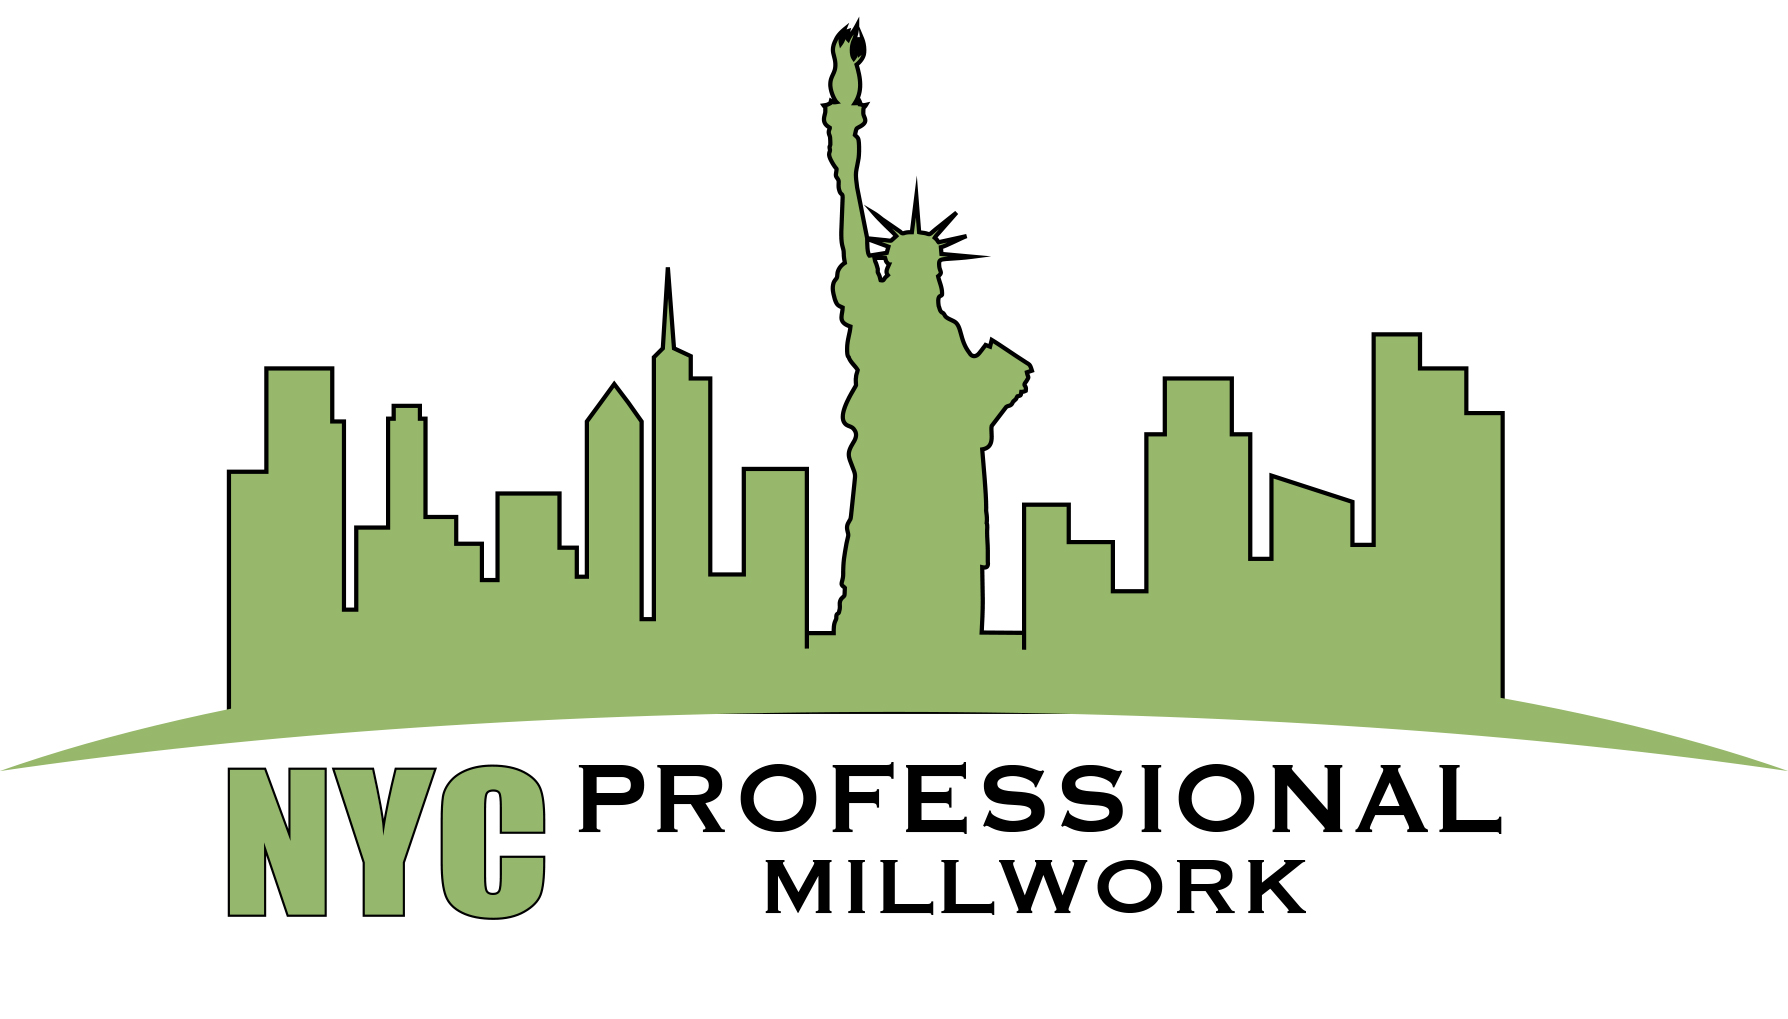 NYC Professional Millwork